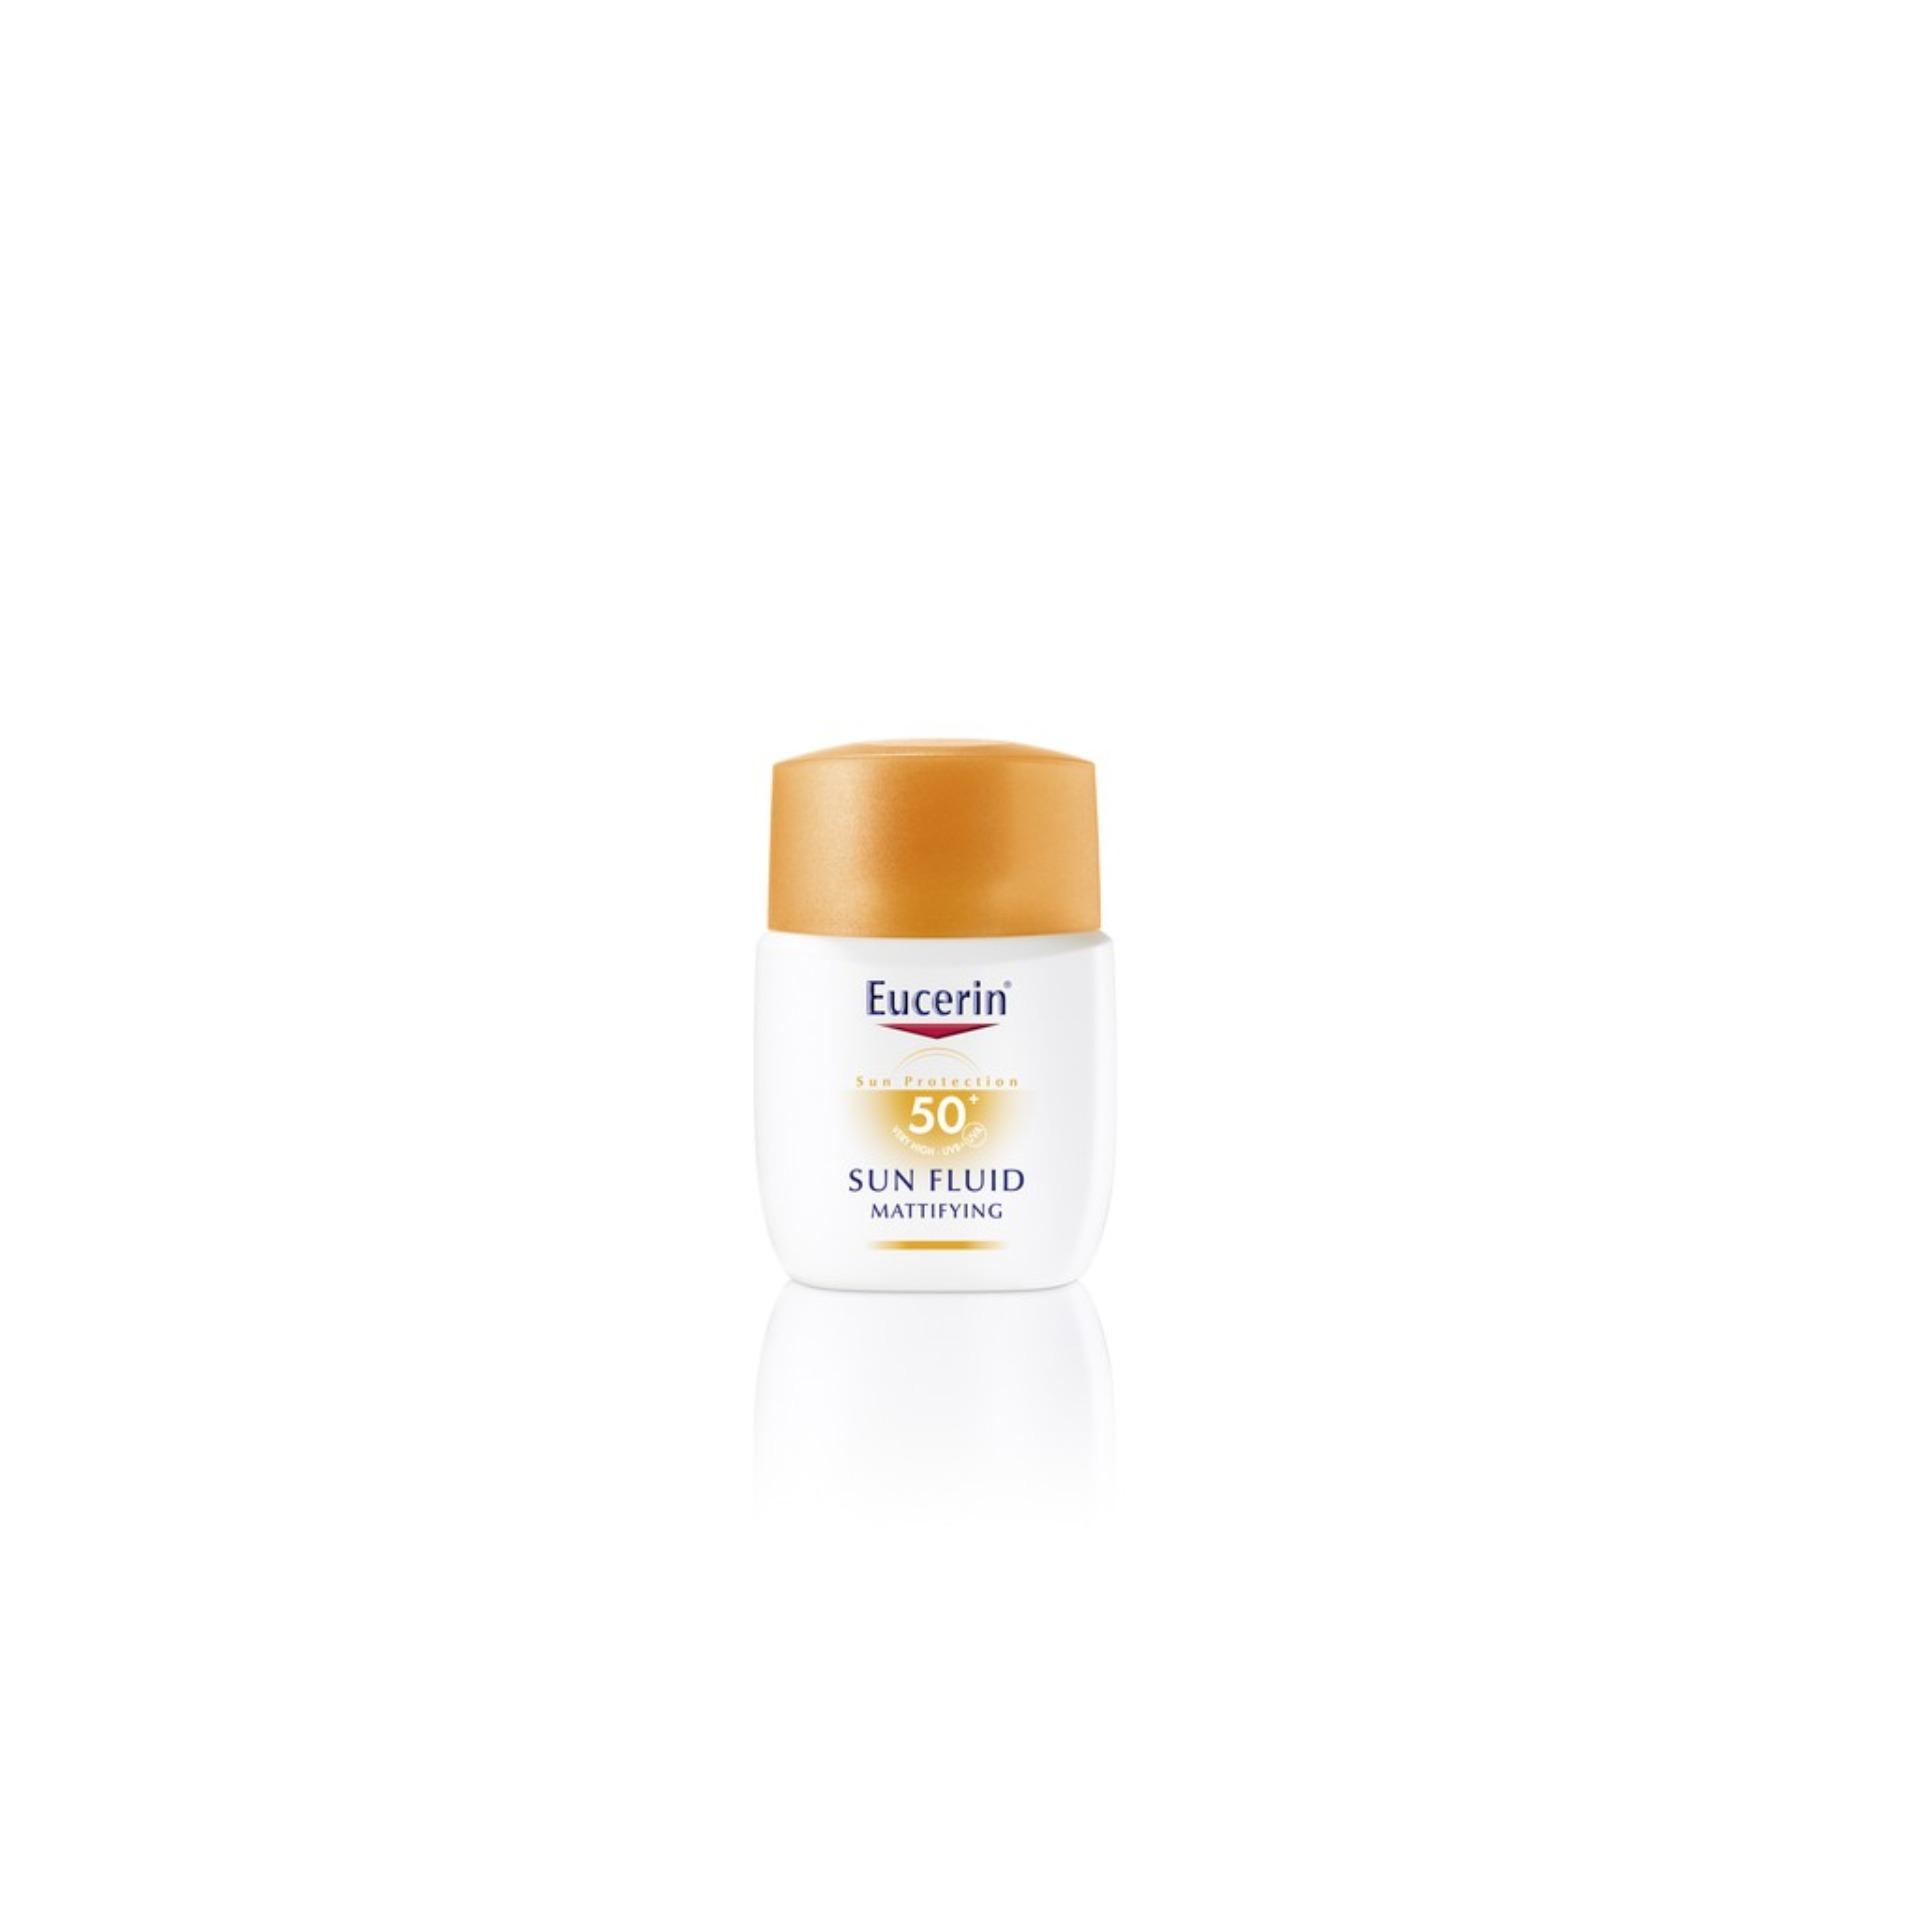 Eucerin Sun Care Unisex Sun Mattifying Fluid Spf50+ 50ml By Eucerin Official Shop.